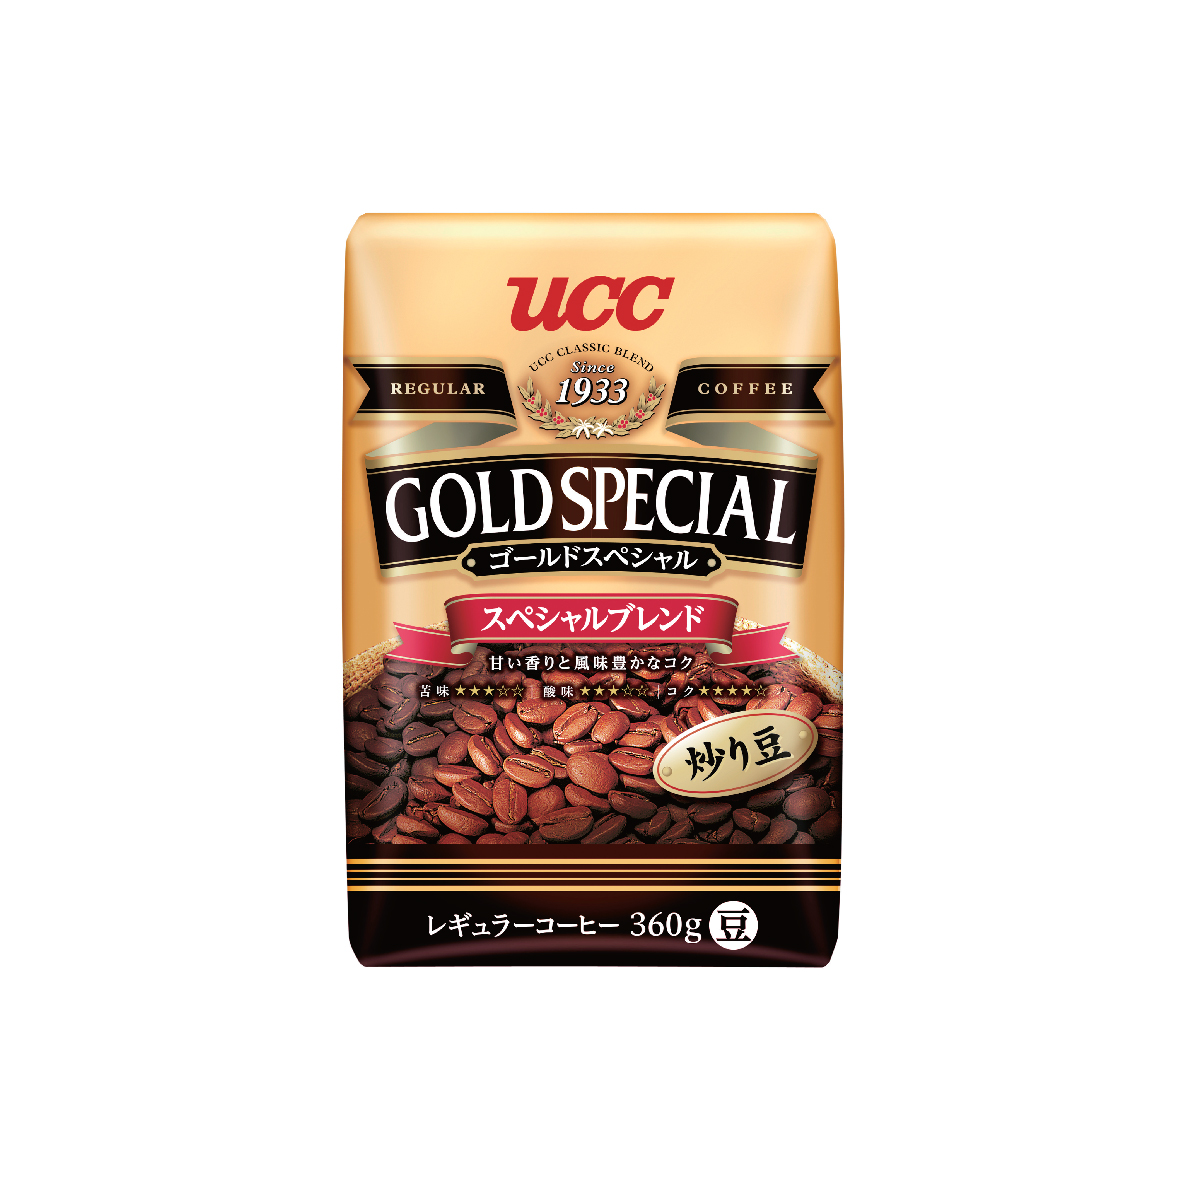 UCC Gold Special Special Blend Roasted Coffee Beans